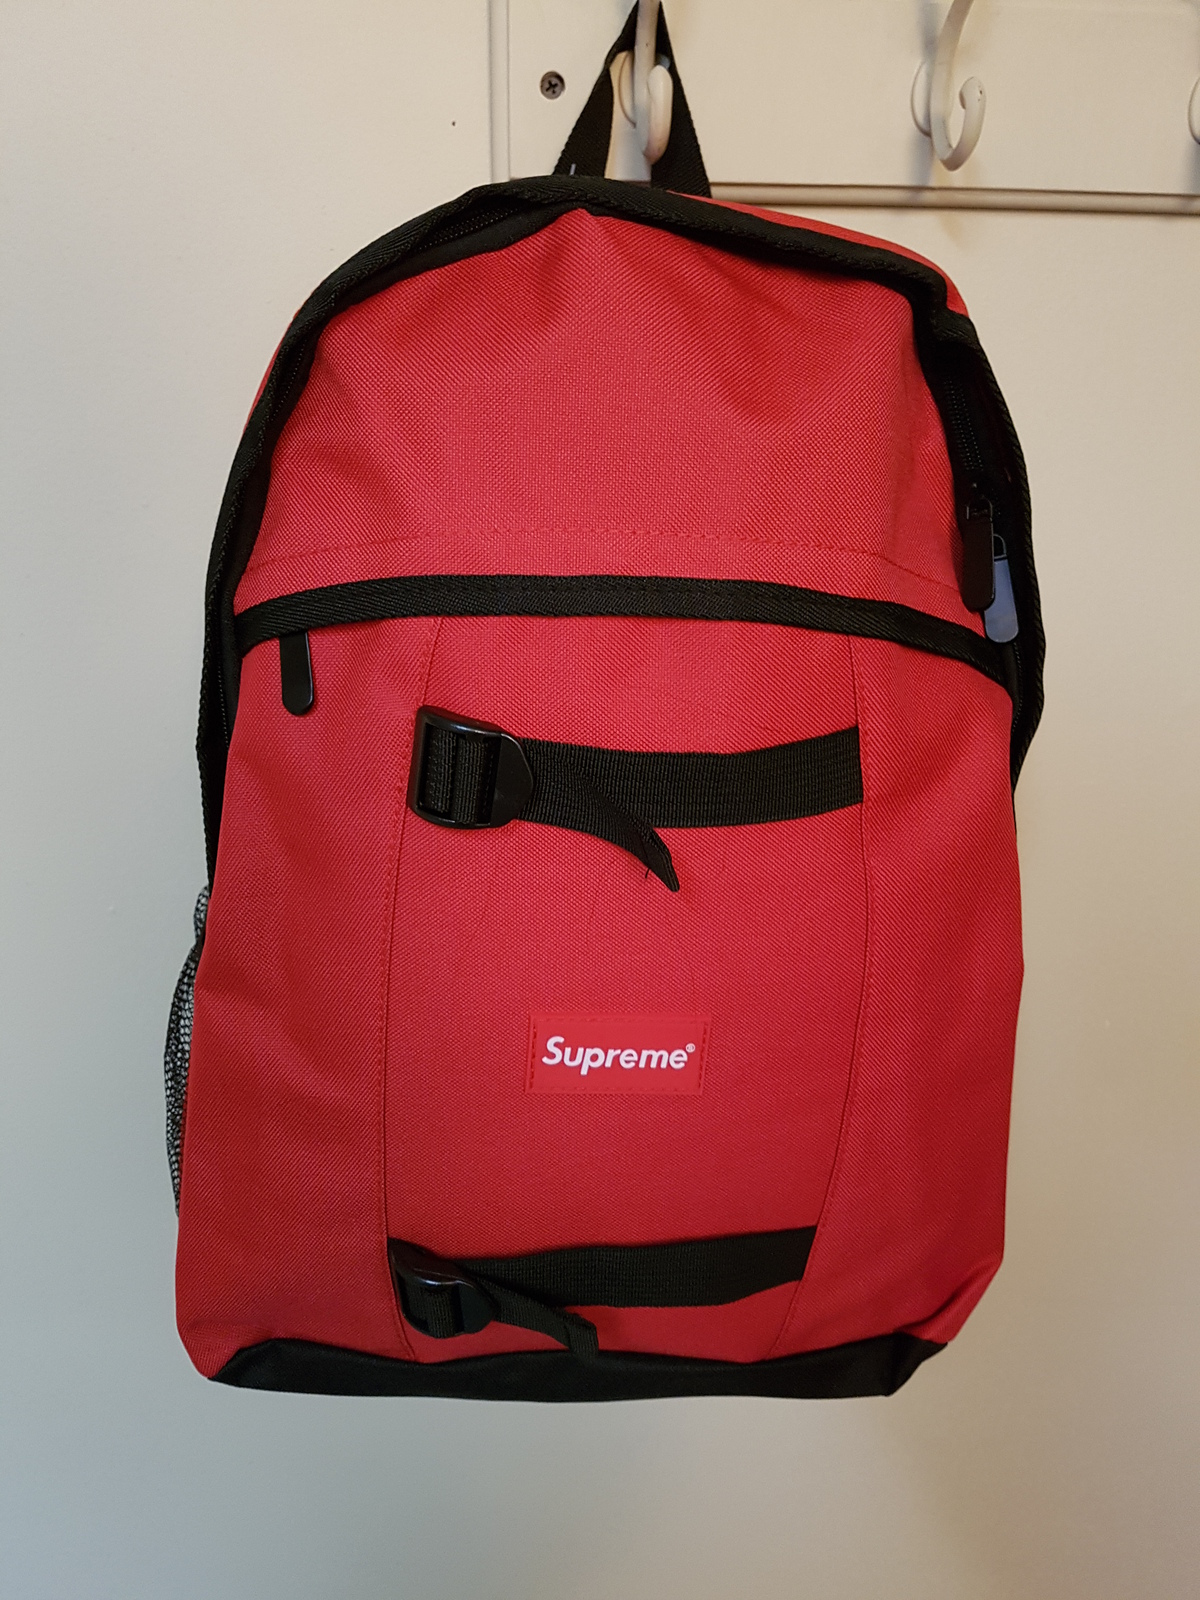 How To Buy A Supreme Backpack- Fenix Toulouse Handball 6affb35d30058